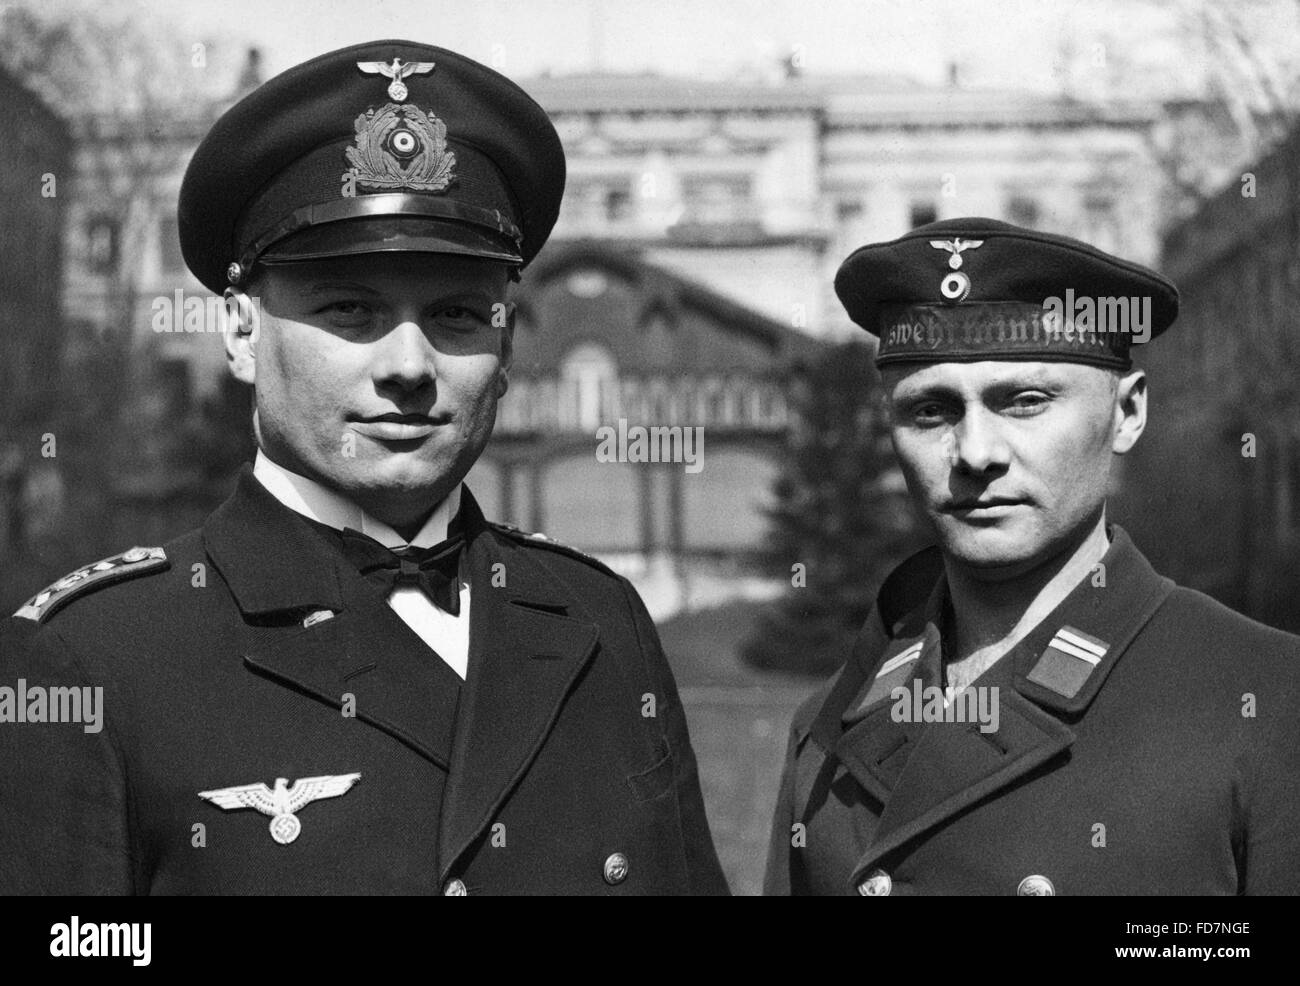 New uniform regulations at the Reichsmarine (Imperial Navy), around 1934 - Stock Image